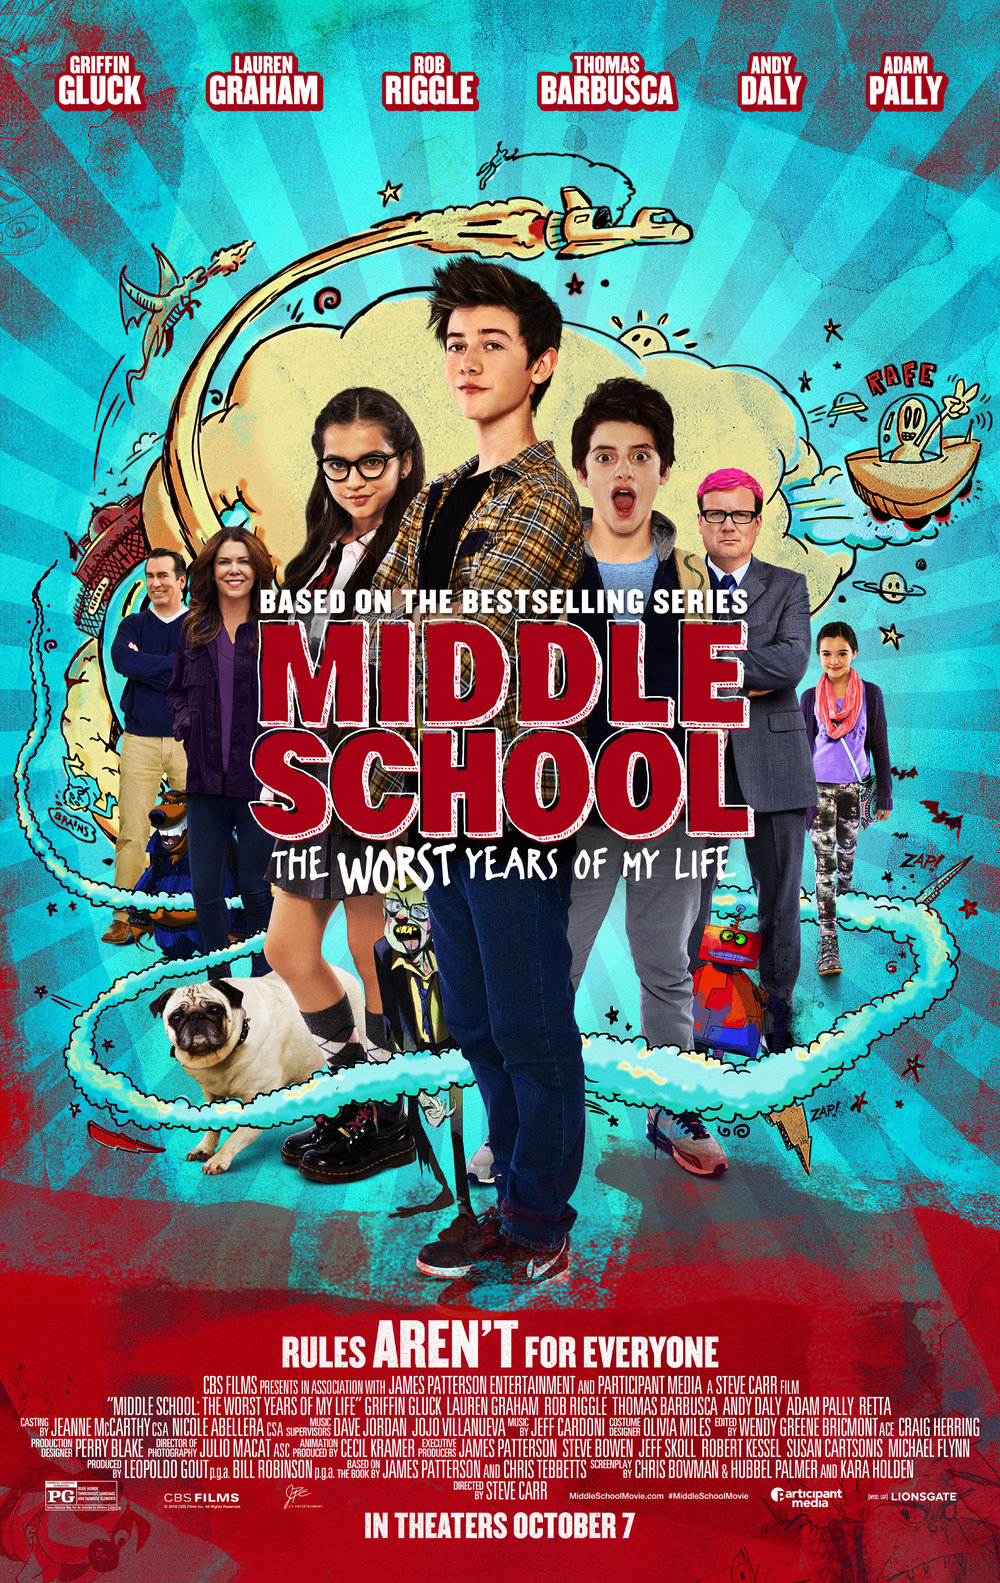 andy marx middle school poster.jpg